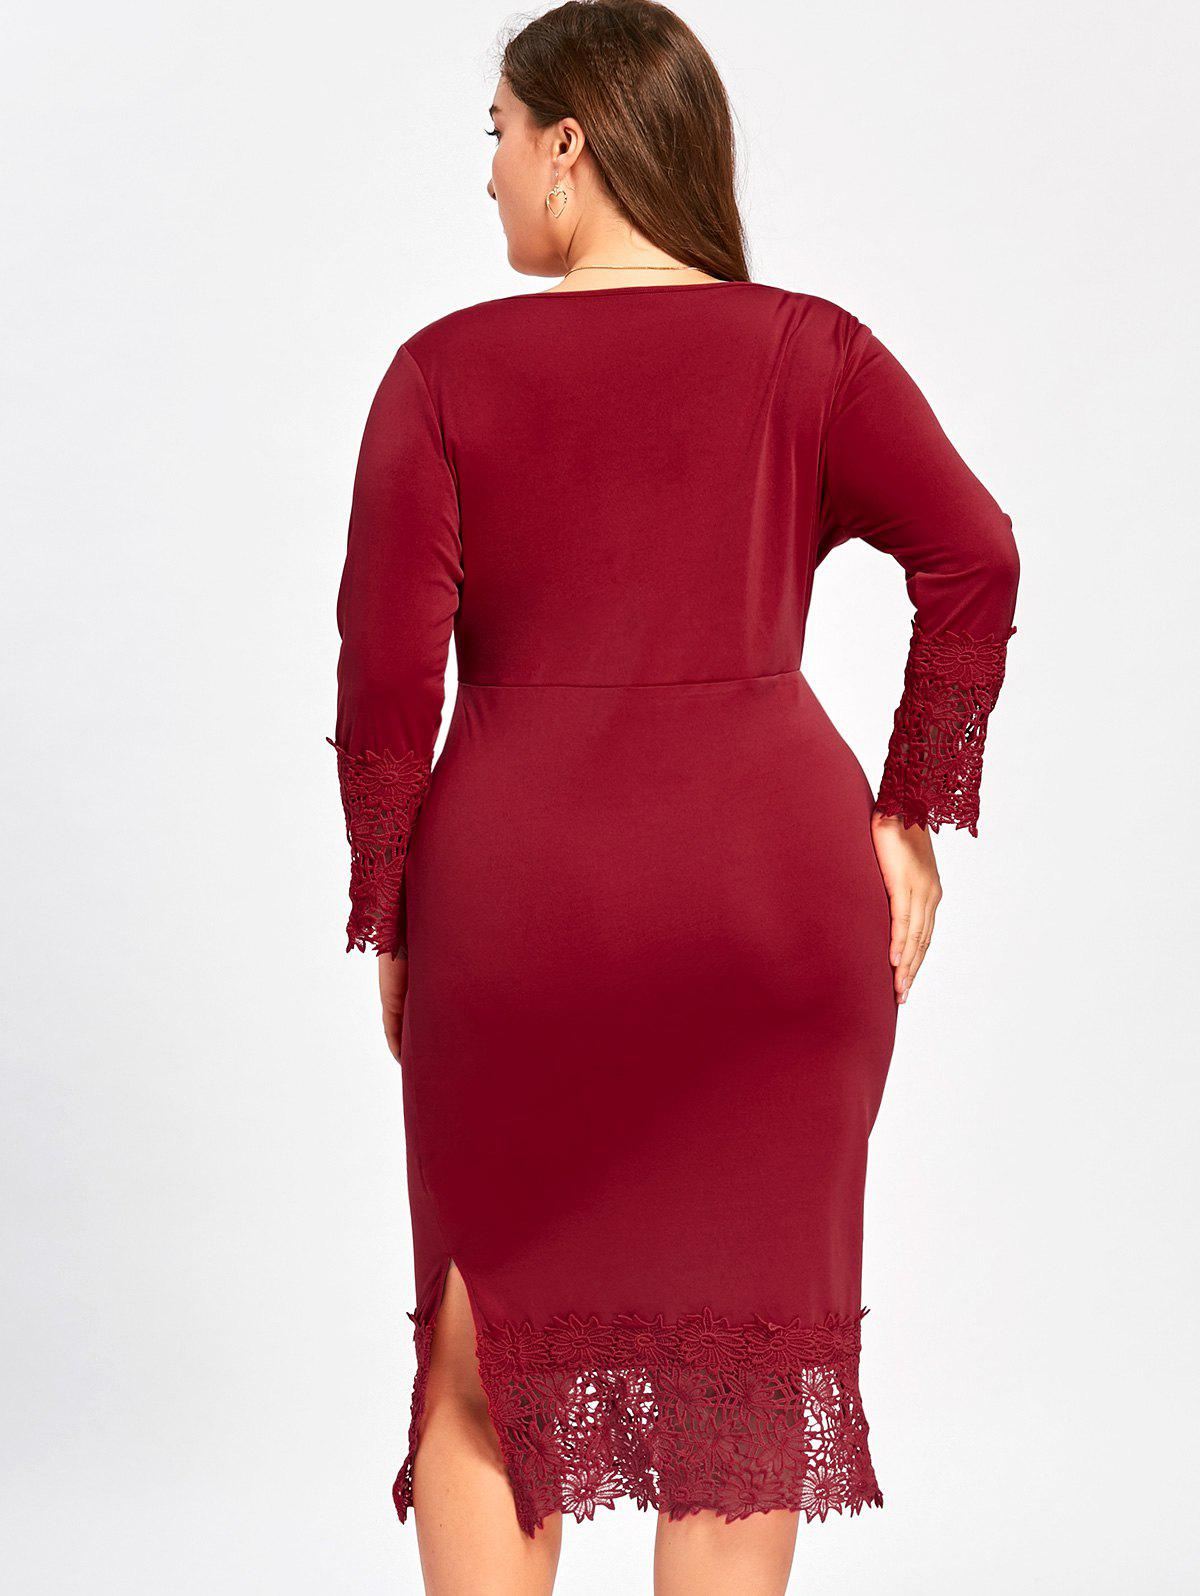 Lace Trim Plus Size Surplice Dress - Rouge vineux 4XL